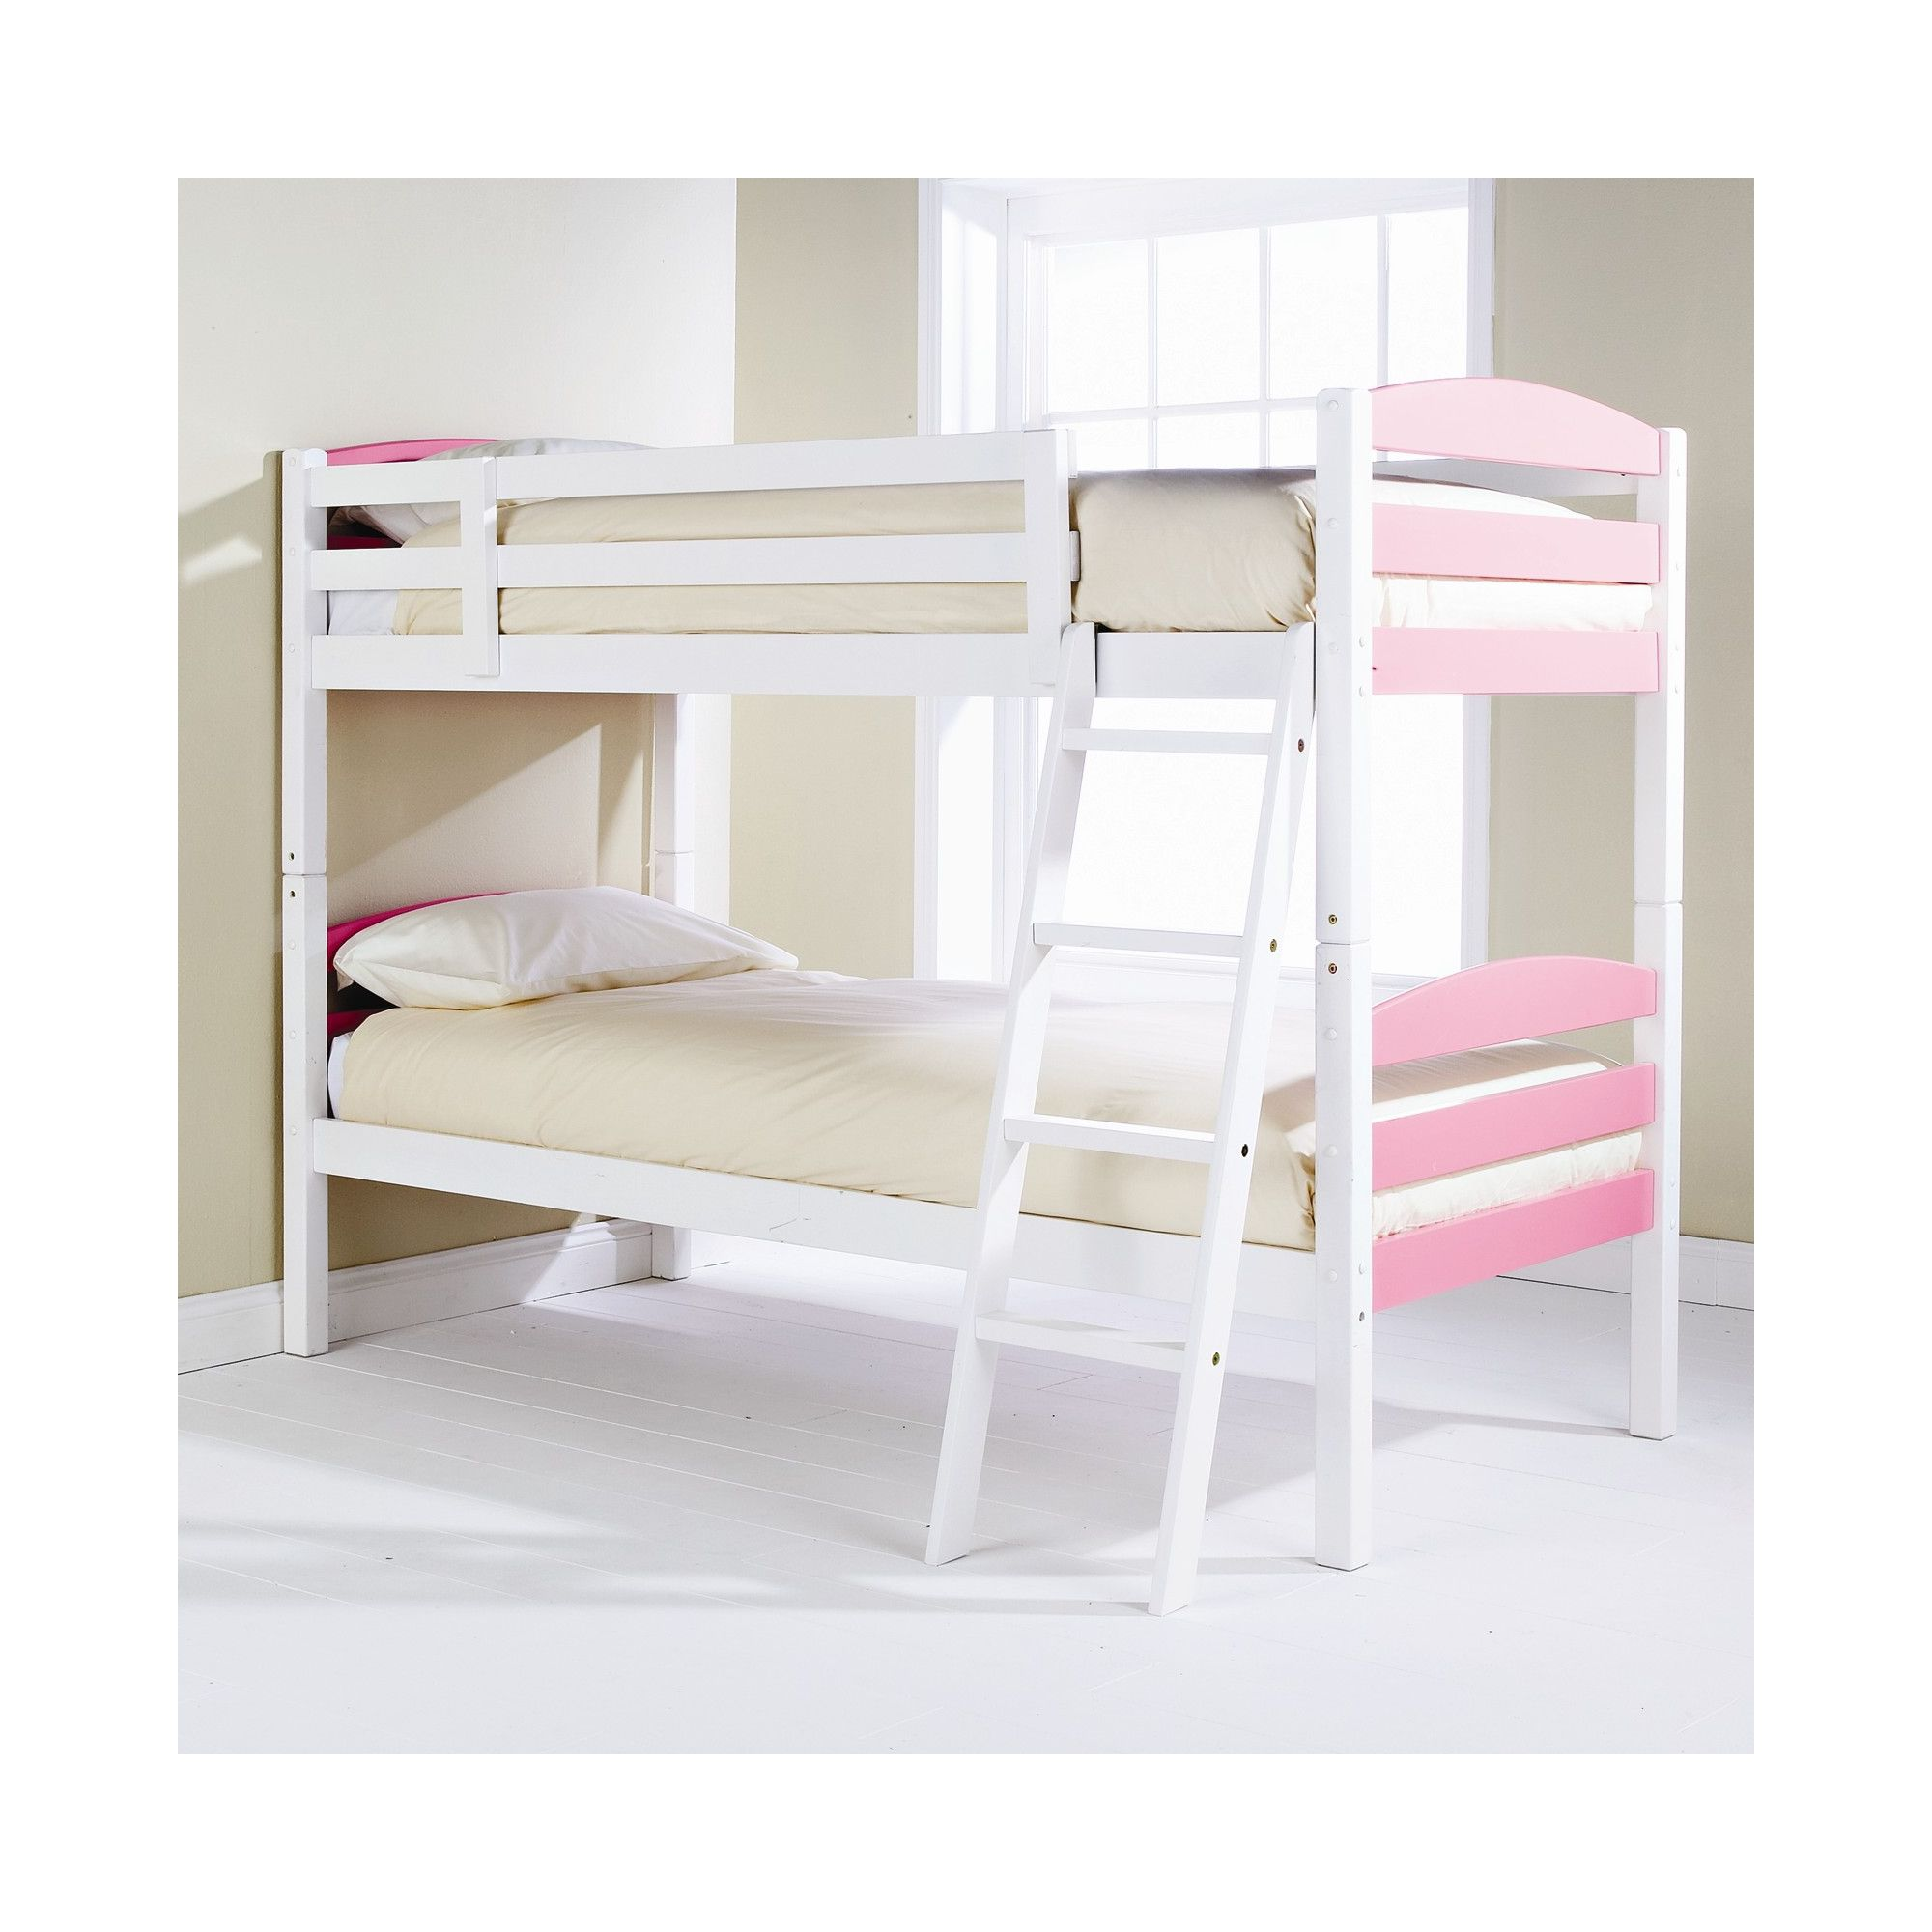 Elements Childrens Bunk Bed - Pink / White at Tescos Direct